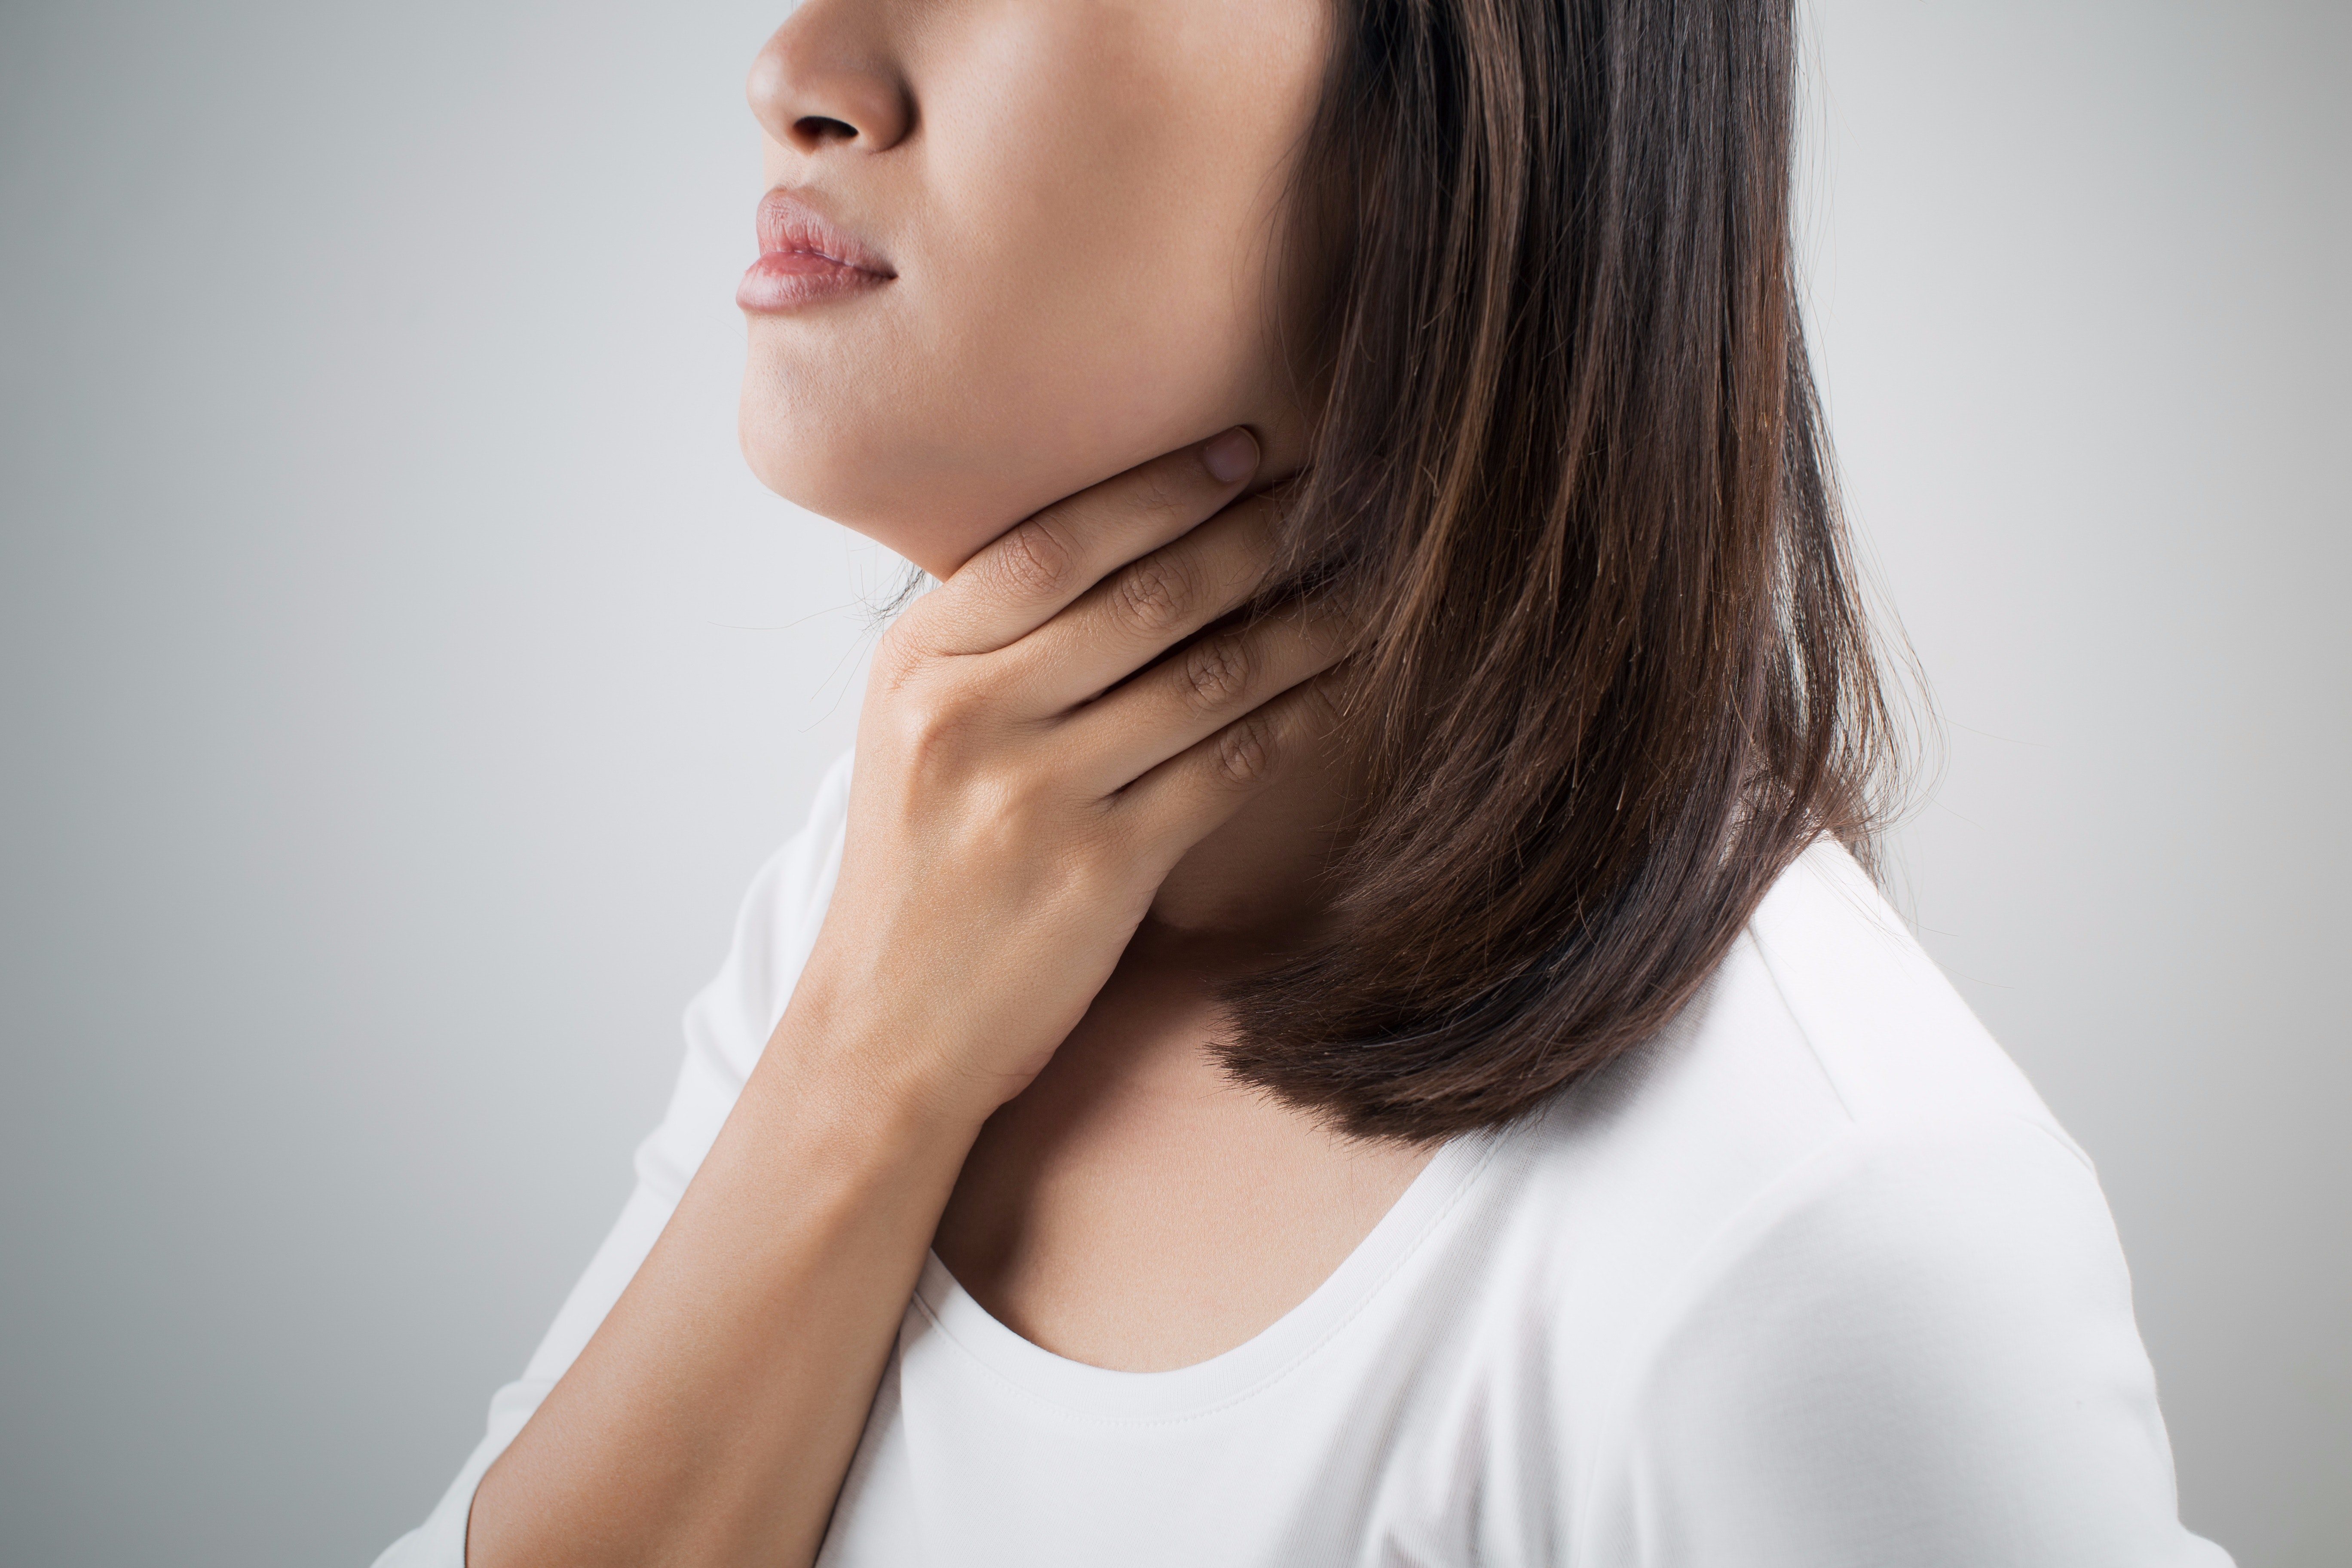 An image depicting a person suffering from Viral Throat Infection symptoms